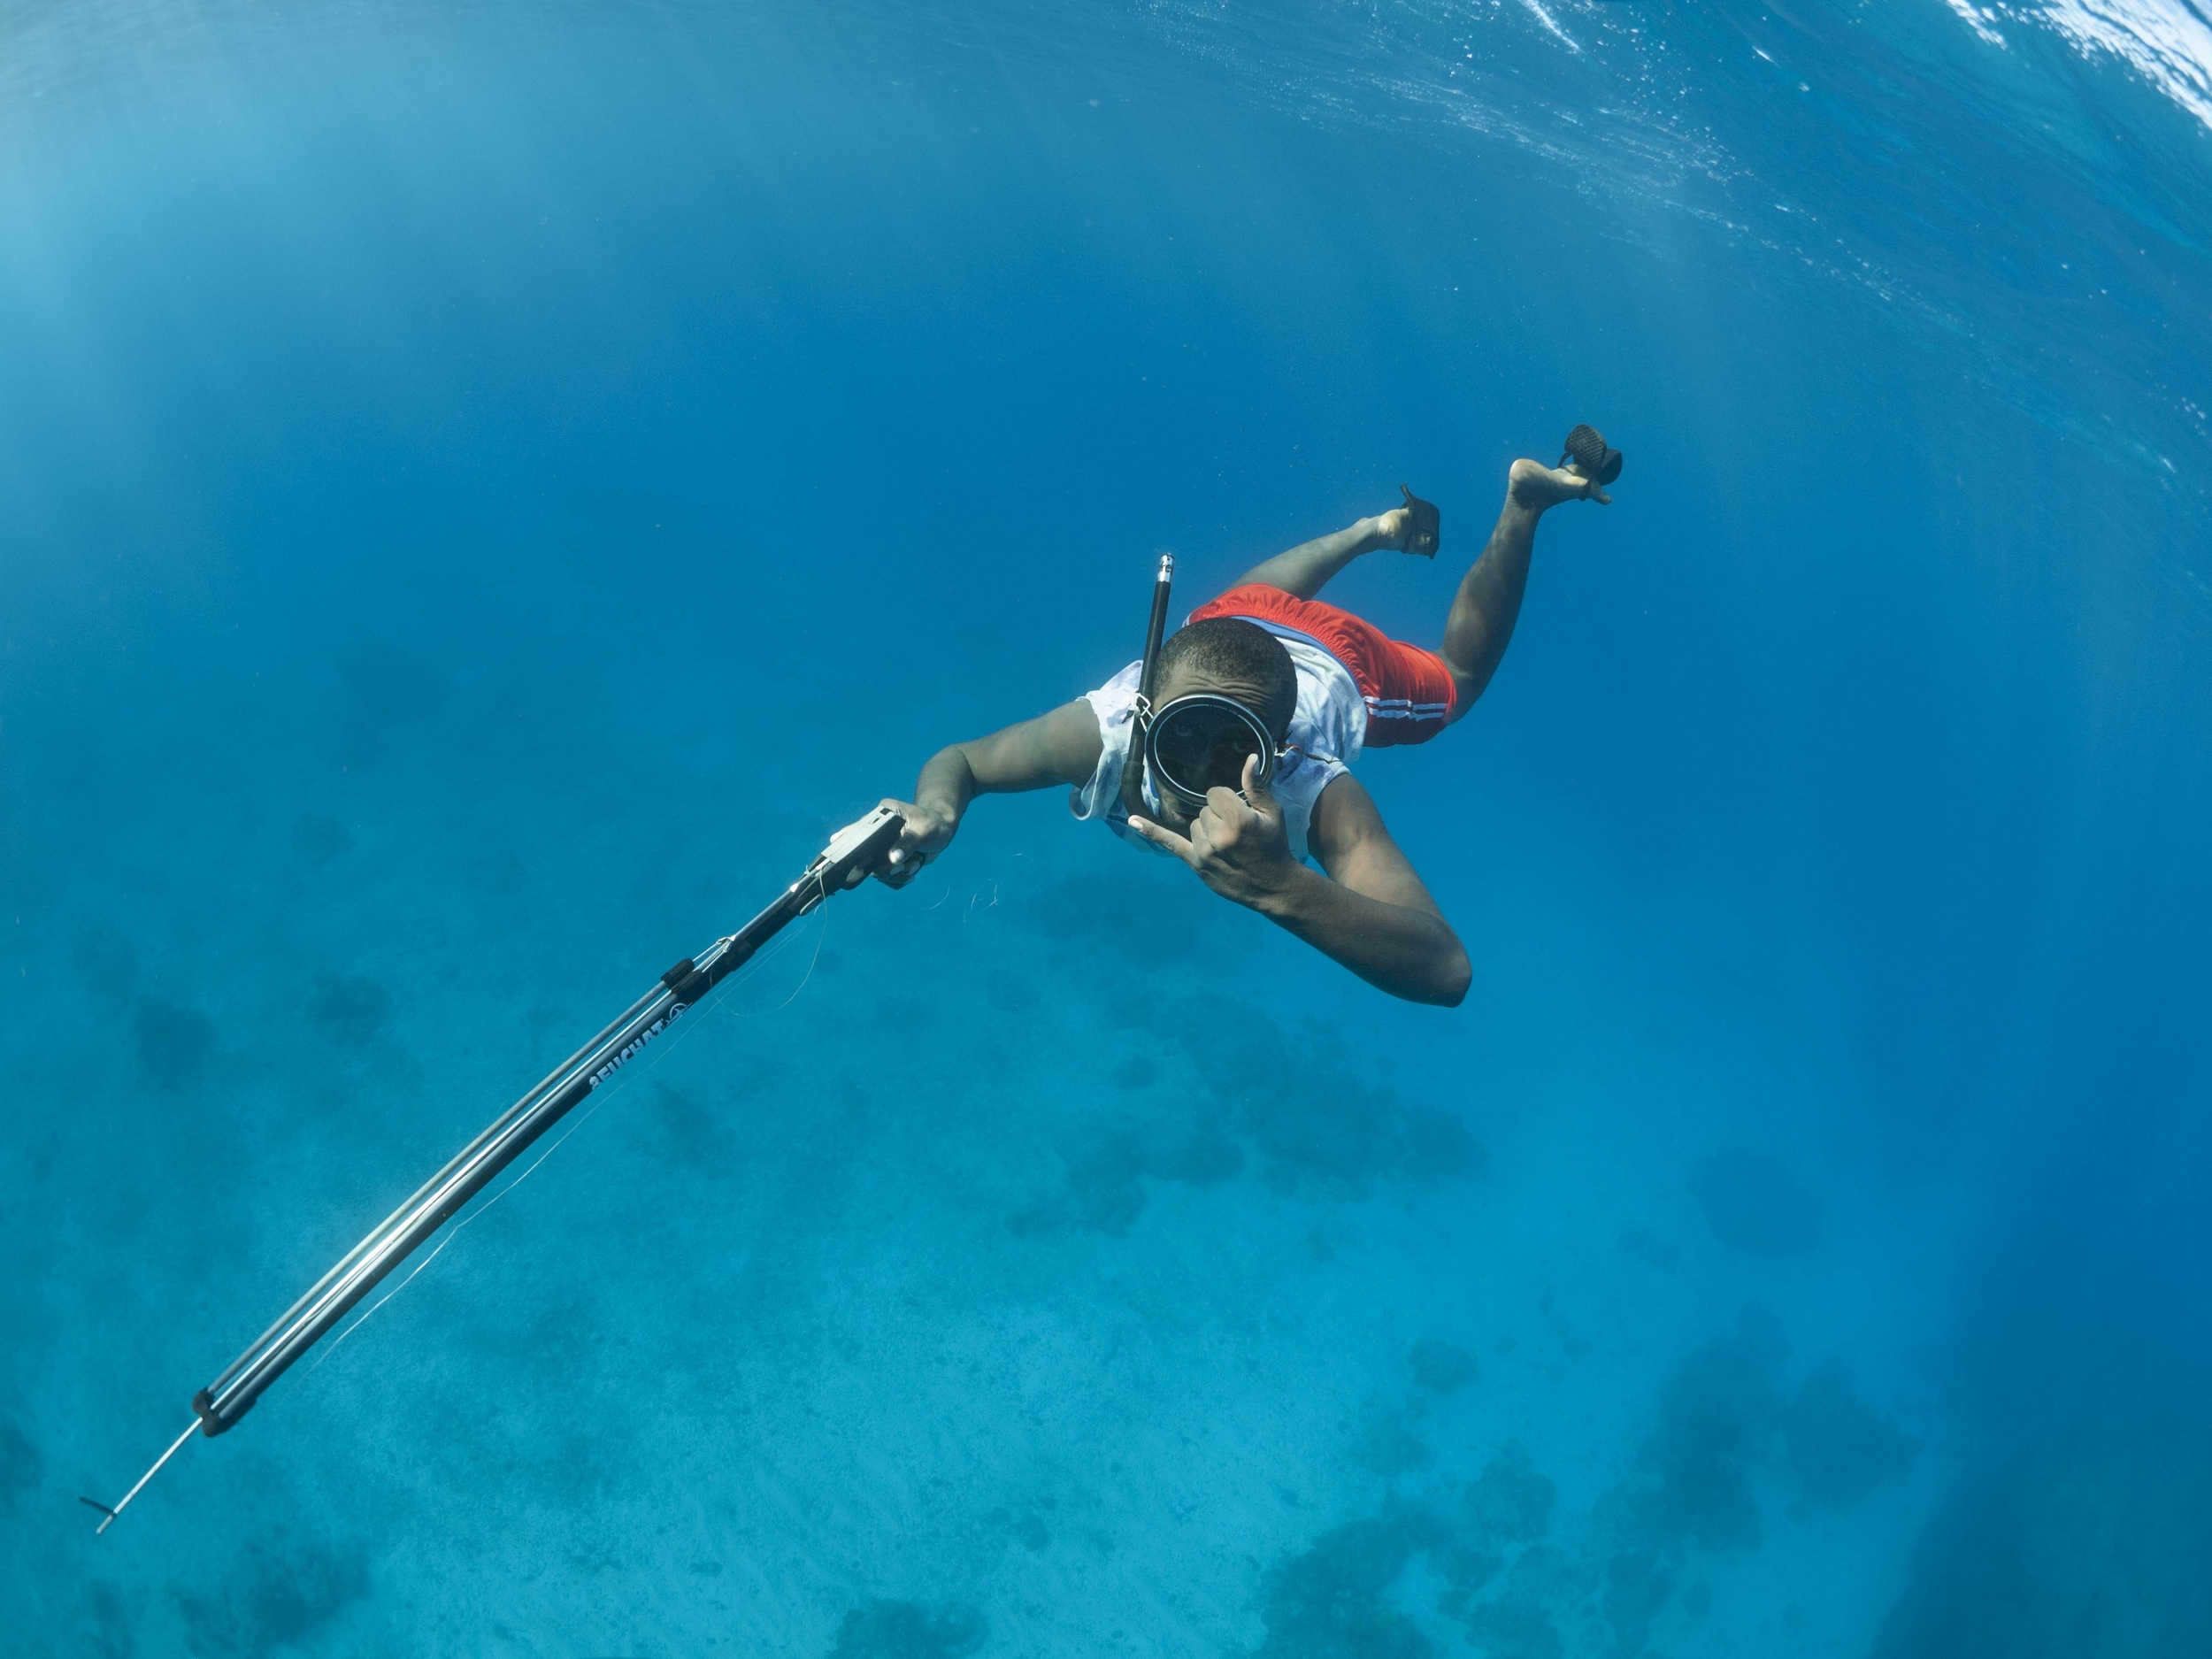 Local villager spearfishing off the island of Espiritu Santo, Vanuatu. Photo: Clark McNulty  We are one day into the   2nd Annual Kirk McNulty White Seabass Spearfishing Tournament  . The tournament runs through MaY 31, 2015.   A $10 entry is required prior to spearing a fish . Register   here .  Winners will be chosen by Top 3 Biggest Fish! Awards Party held in June at Body Glove Headquarters in Redondo Beach.  The proceeds will be donated to the White Seabass Hatchery Program led by  Hubbs-Seaworld  to help improve the WSB population on our coast.  In 2014, the inaugural contest was won by South Bay local Paul Hugoboom with a 72.70 pound white sea bass speared in local waters.  Follow us on  Instagram  and share your images #kirkspearo